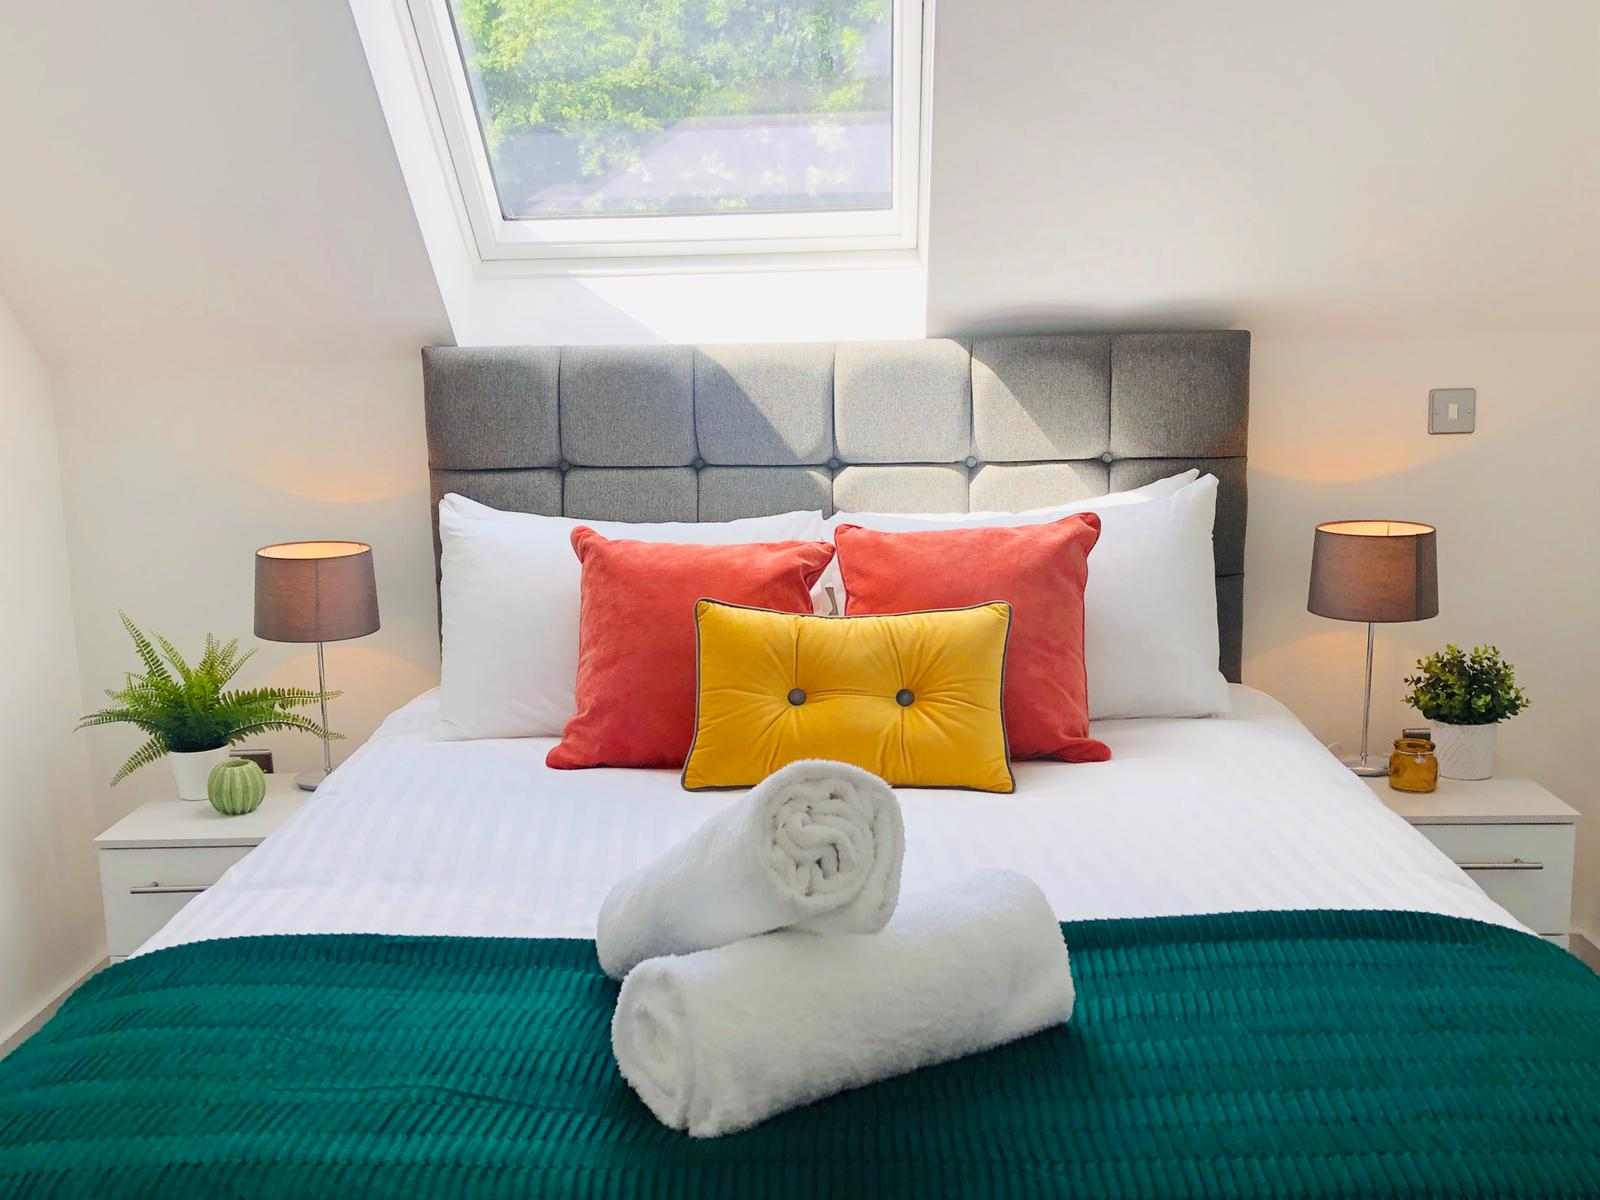 Bed at Opulent Luxe Apartments - Citybase Apartments